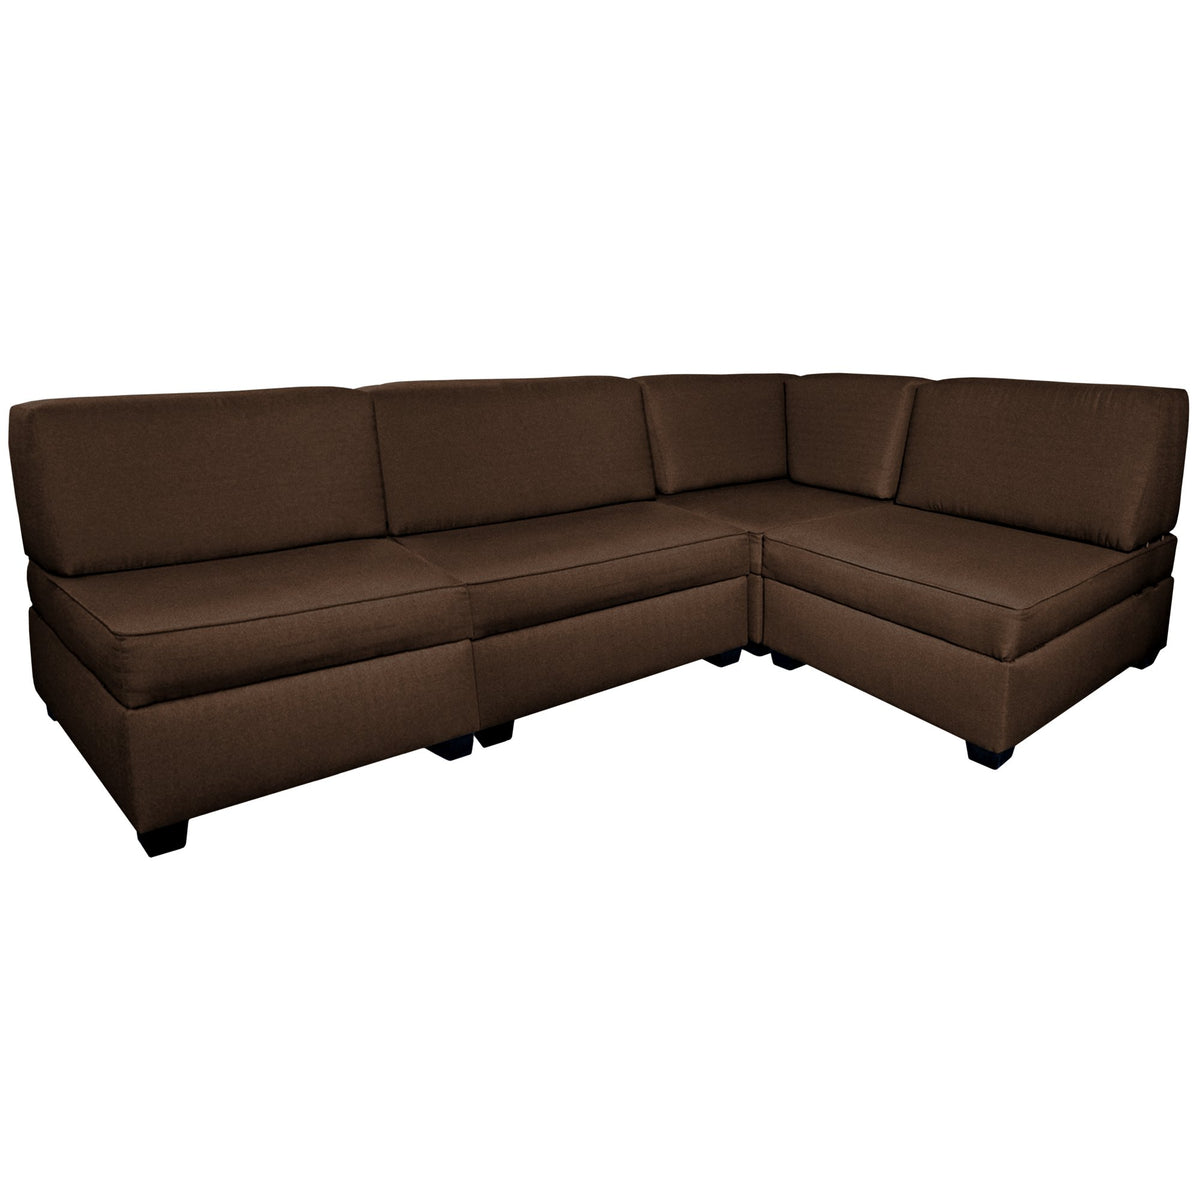 Admirable Sectional Couch With Corner Beatyapartments Chair Design Images Beatyapartmentscom